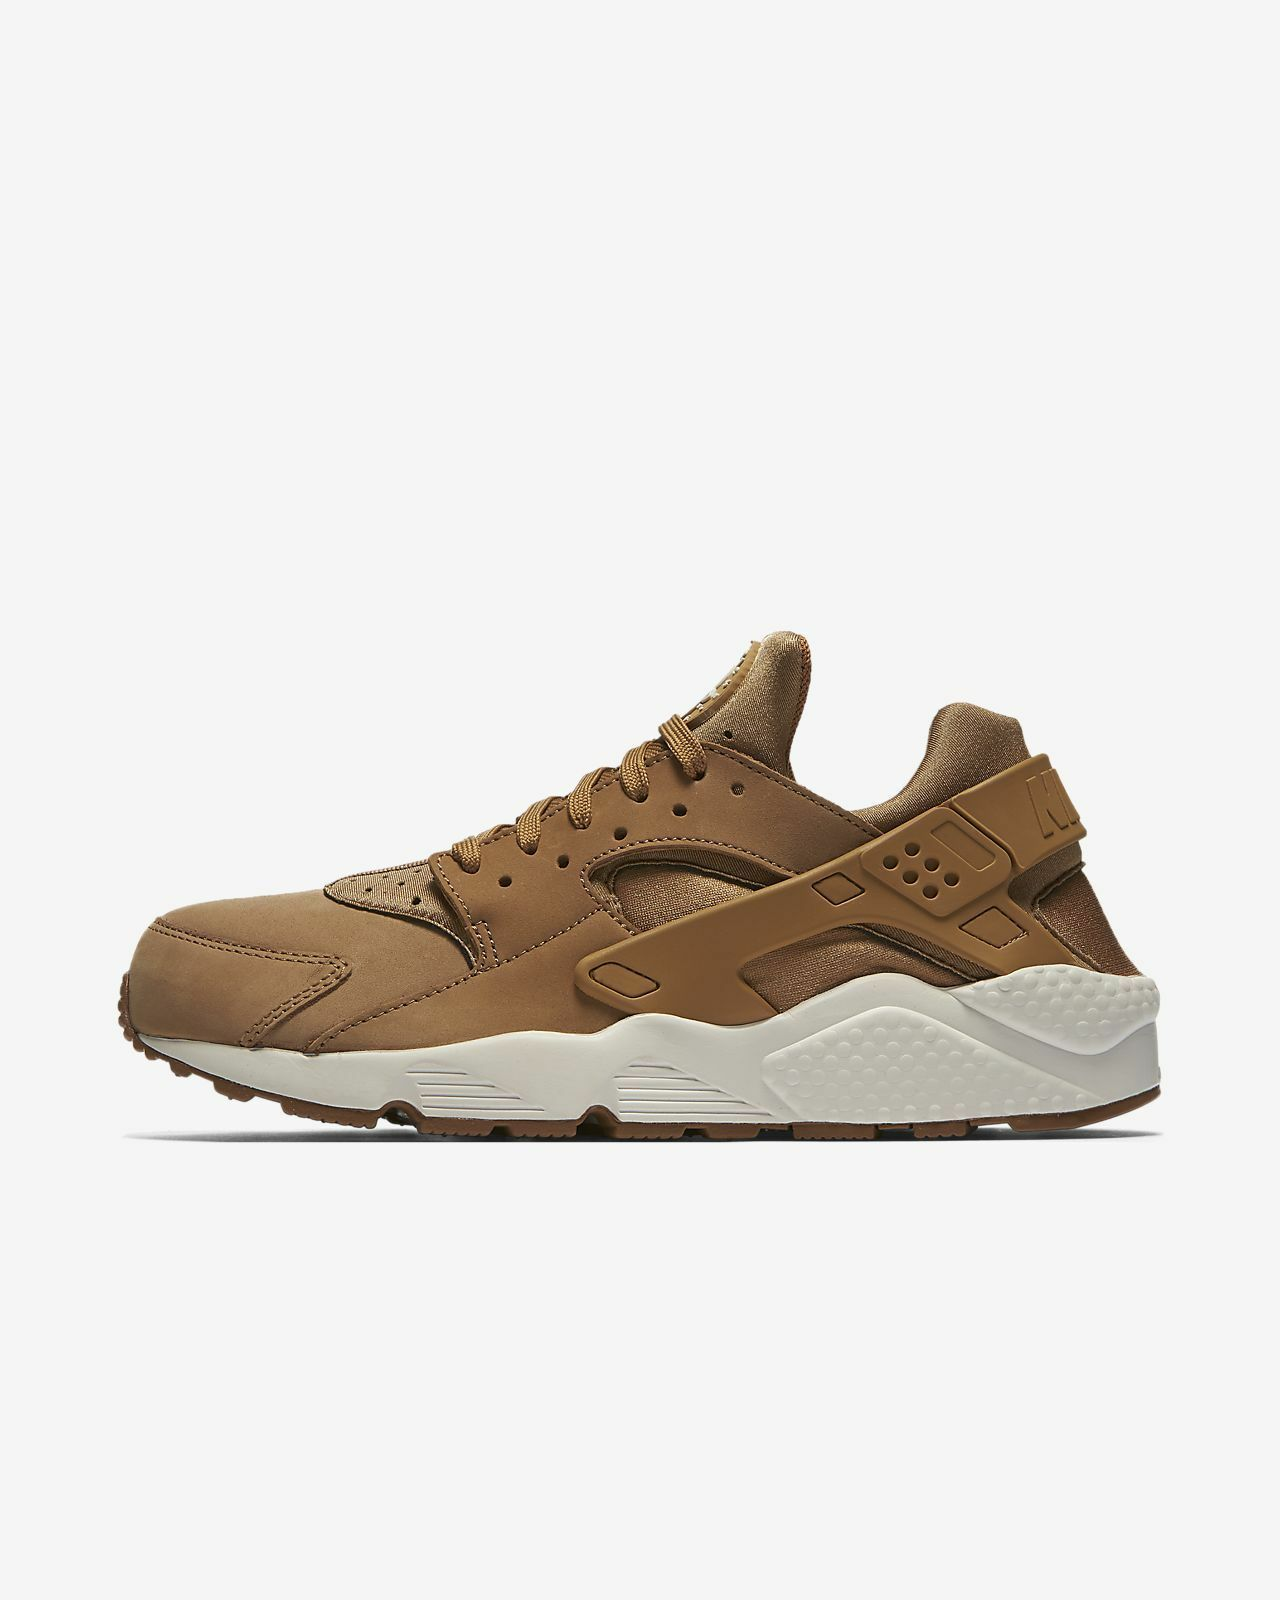 New  Uomo Nike Air Huarache Flax Tan 318429 Trainers UK 8.5 BNIB 318429 Tan 202 Sneakers Gum 74057a